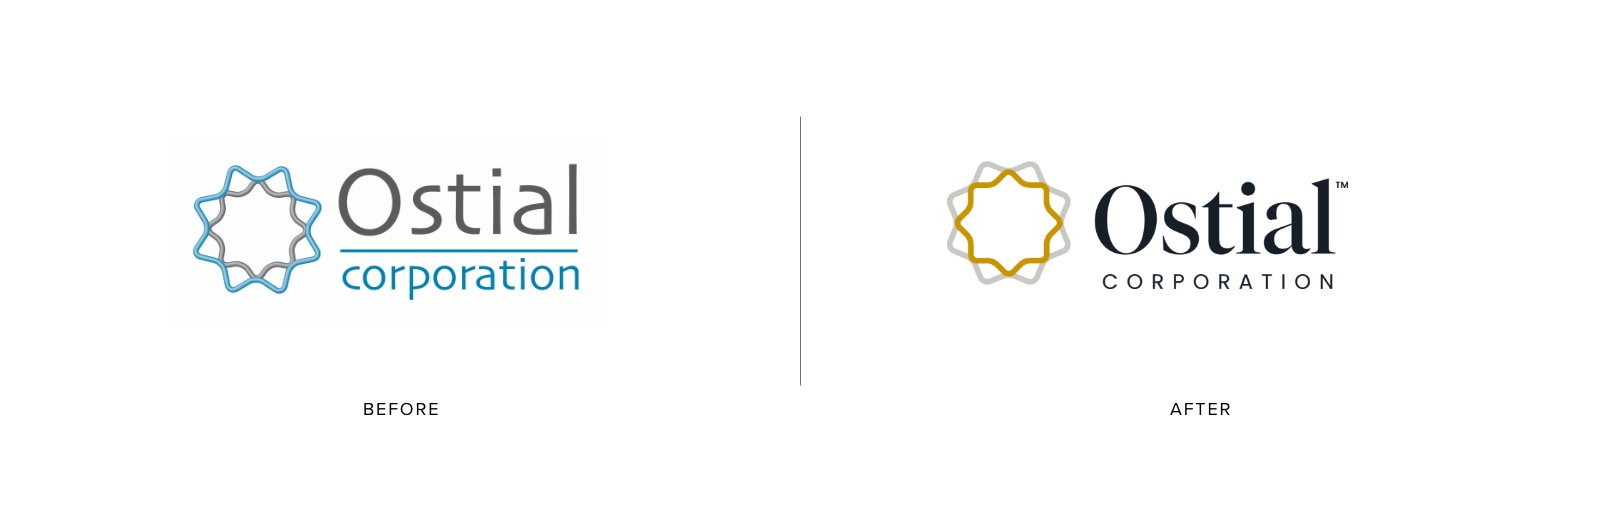 Ostial Medical Logo Refresh - Before and After